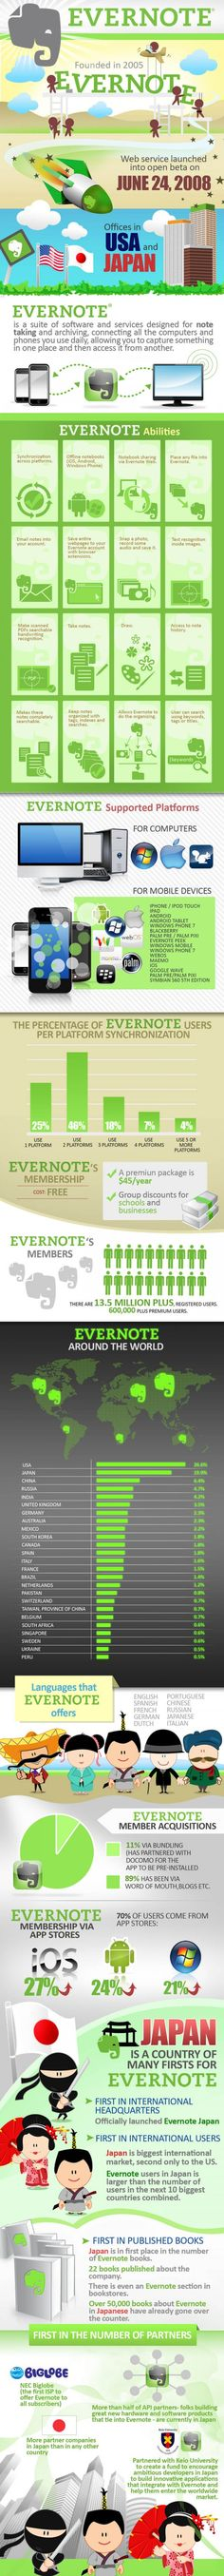 Evernote - a world without Evernote is terrifying....or just a bit more challenging to keep things organized for those of us who are incessant note, list and/or journal creators.